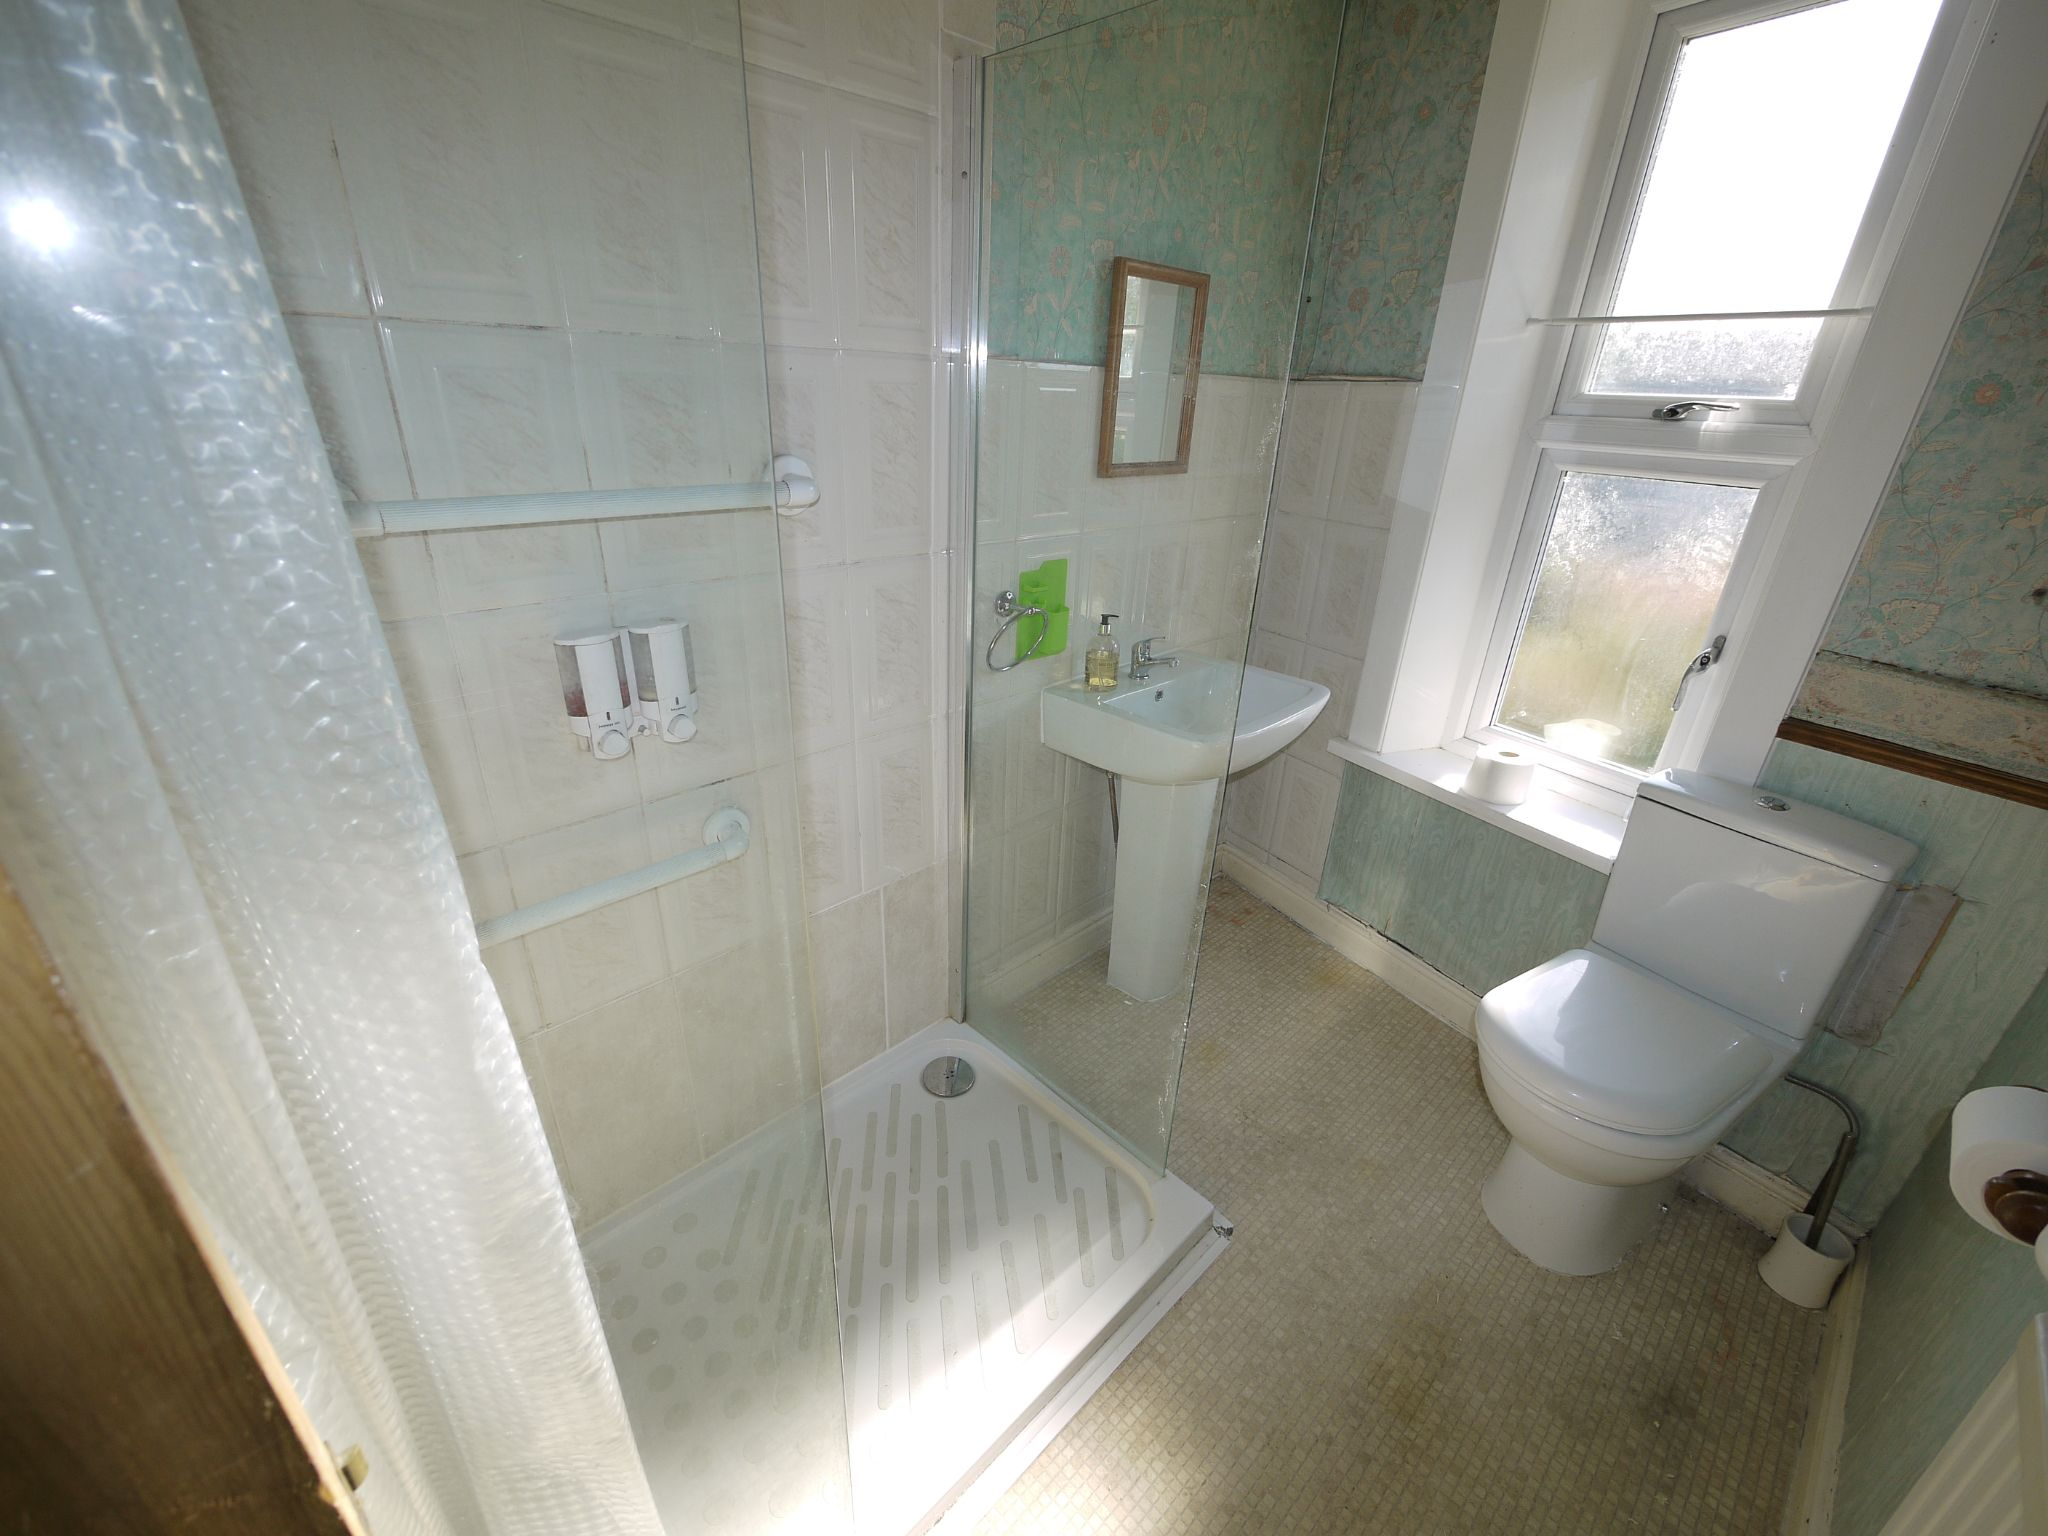 3 bedroom end terraced house SSTC in Brighouse - Shower Room.